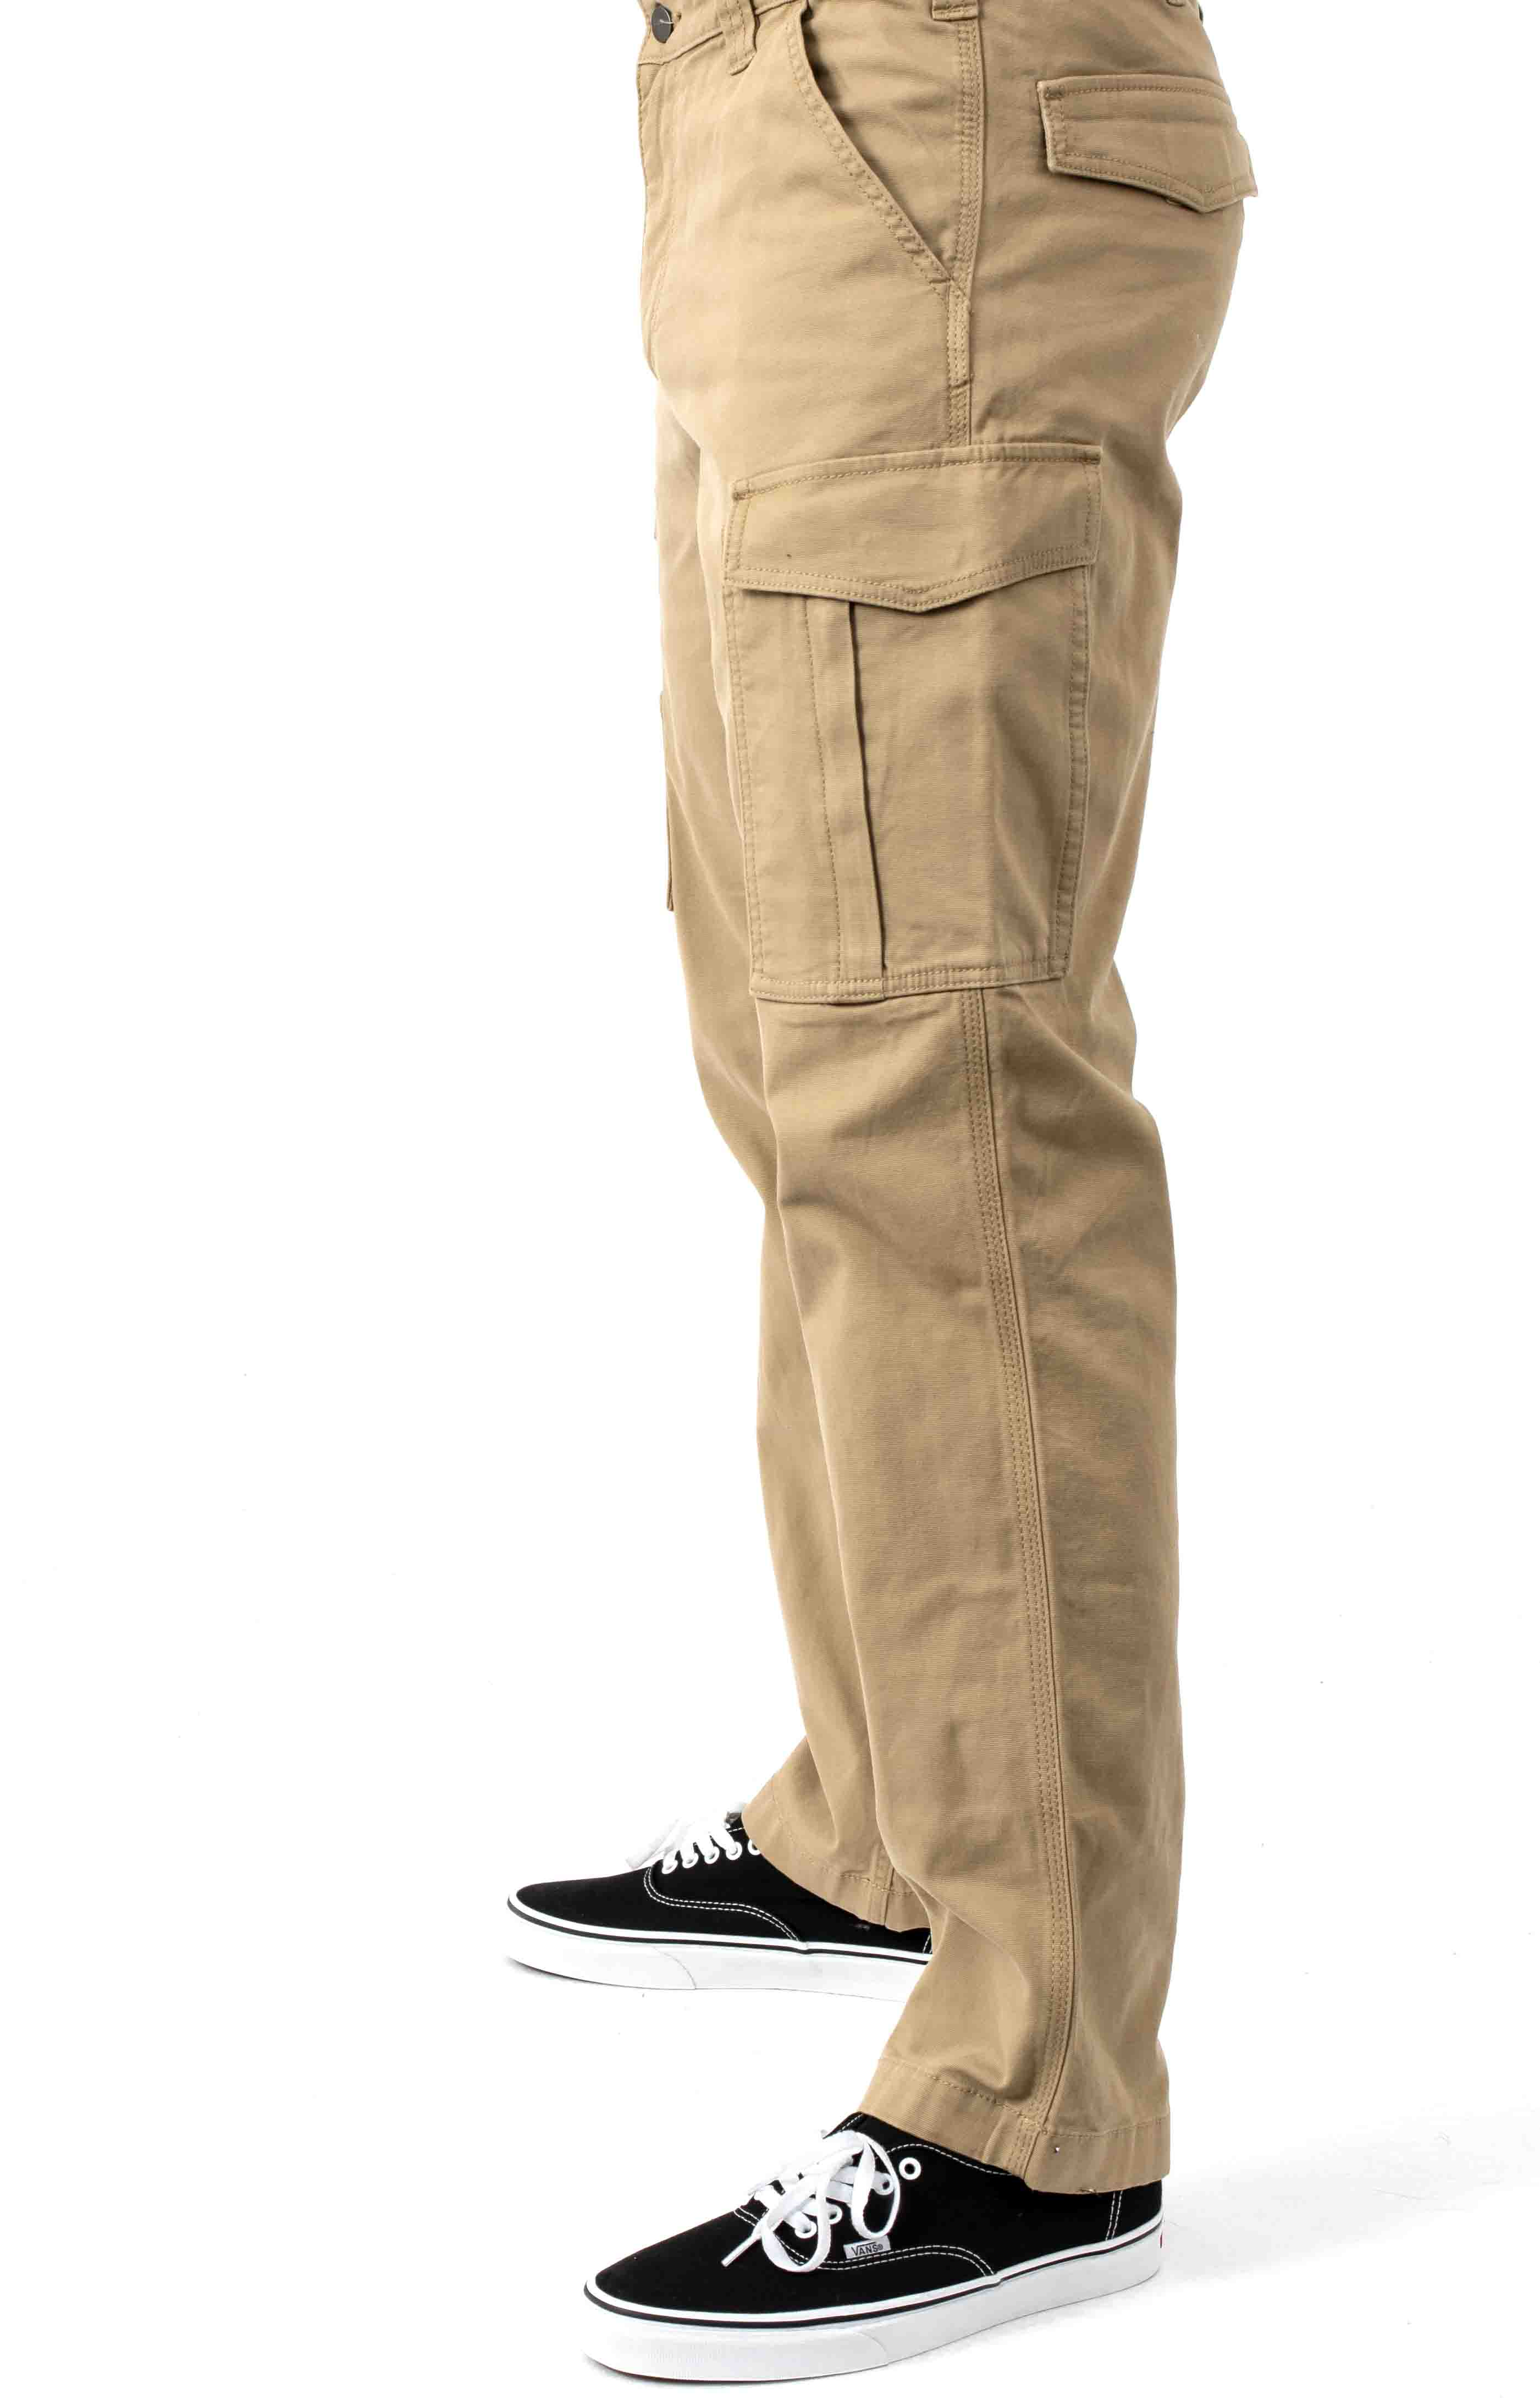 (103574) Rugged Flex Rigby Cargo Pant - Dark Khaki